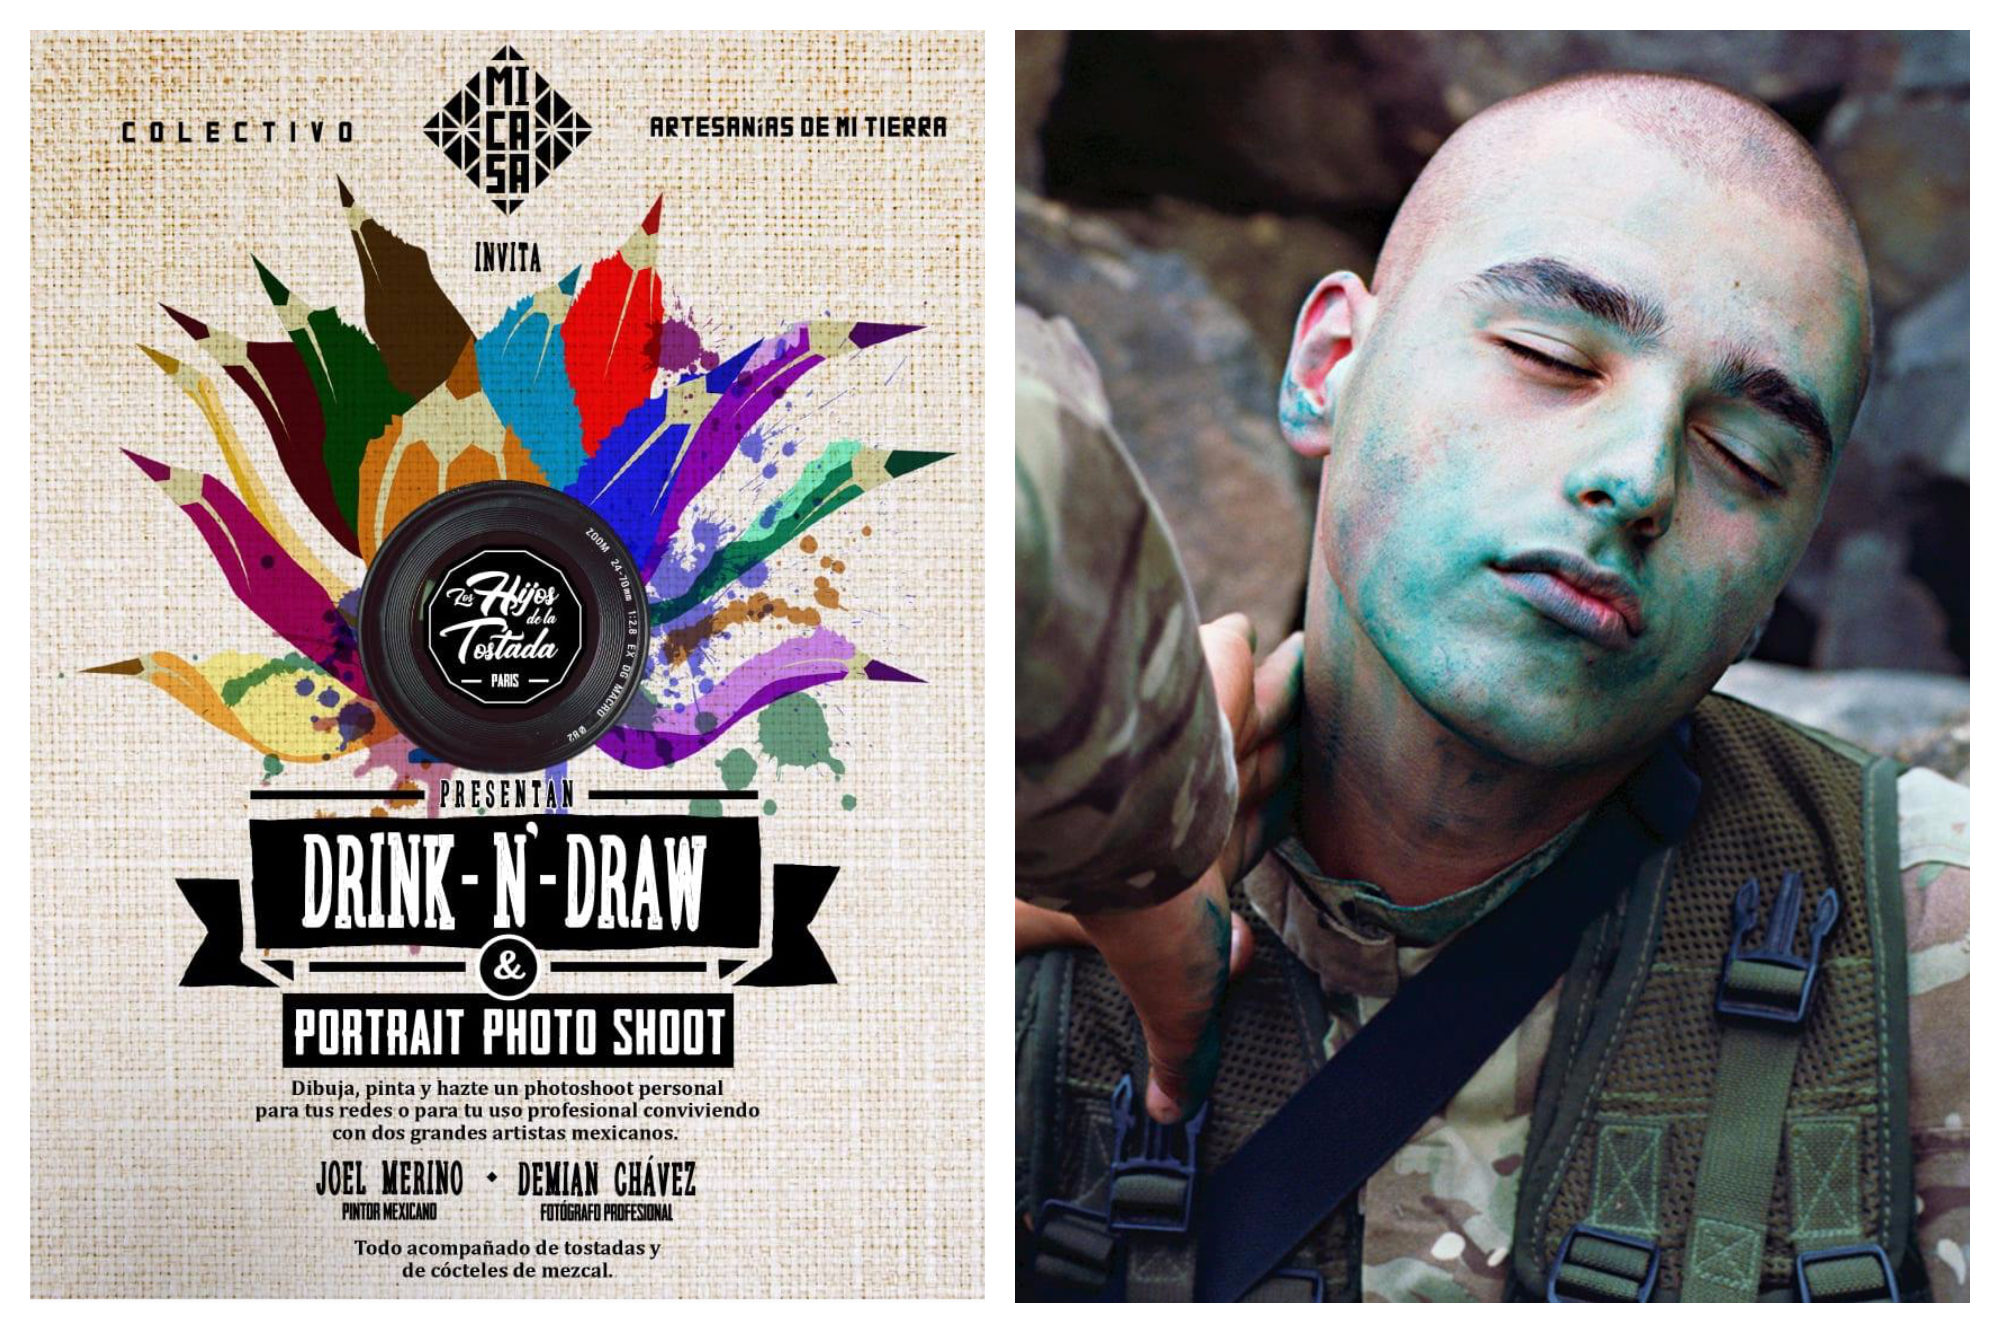 A poster for Drink'n'Draw photography event in Paris  (left) and a photograh of a young man in an army uniform his face covered in green paint (right).